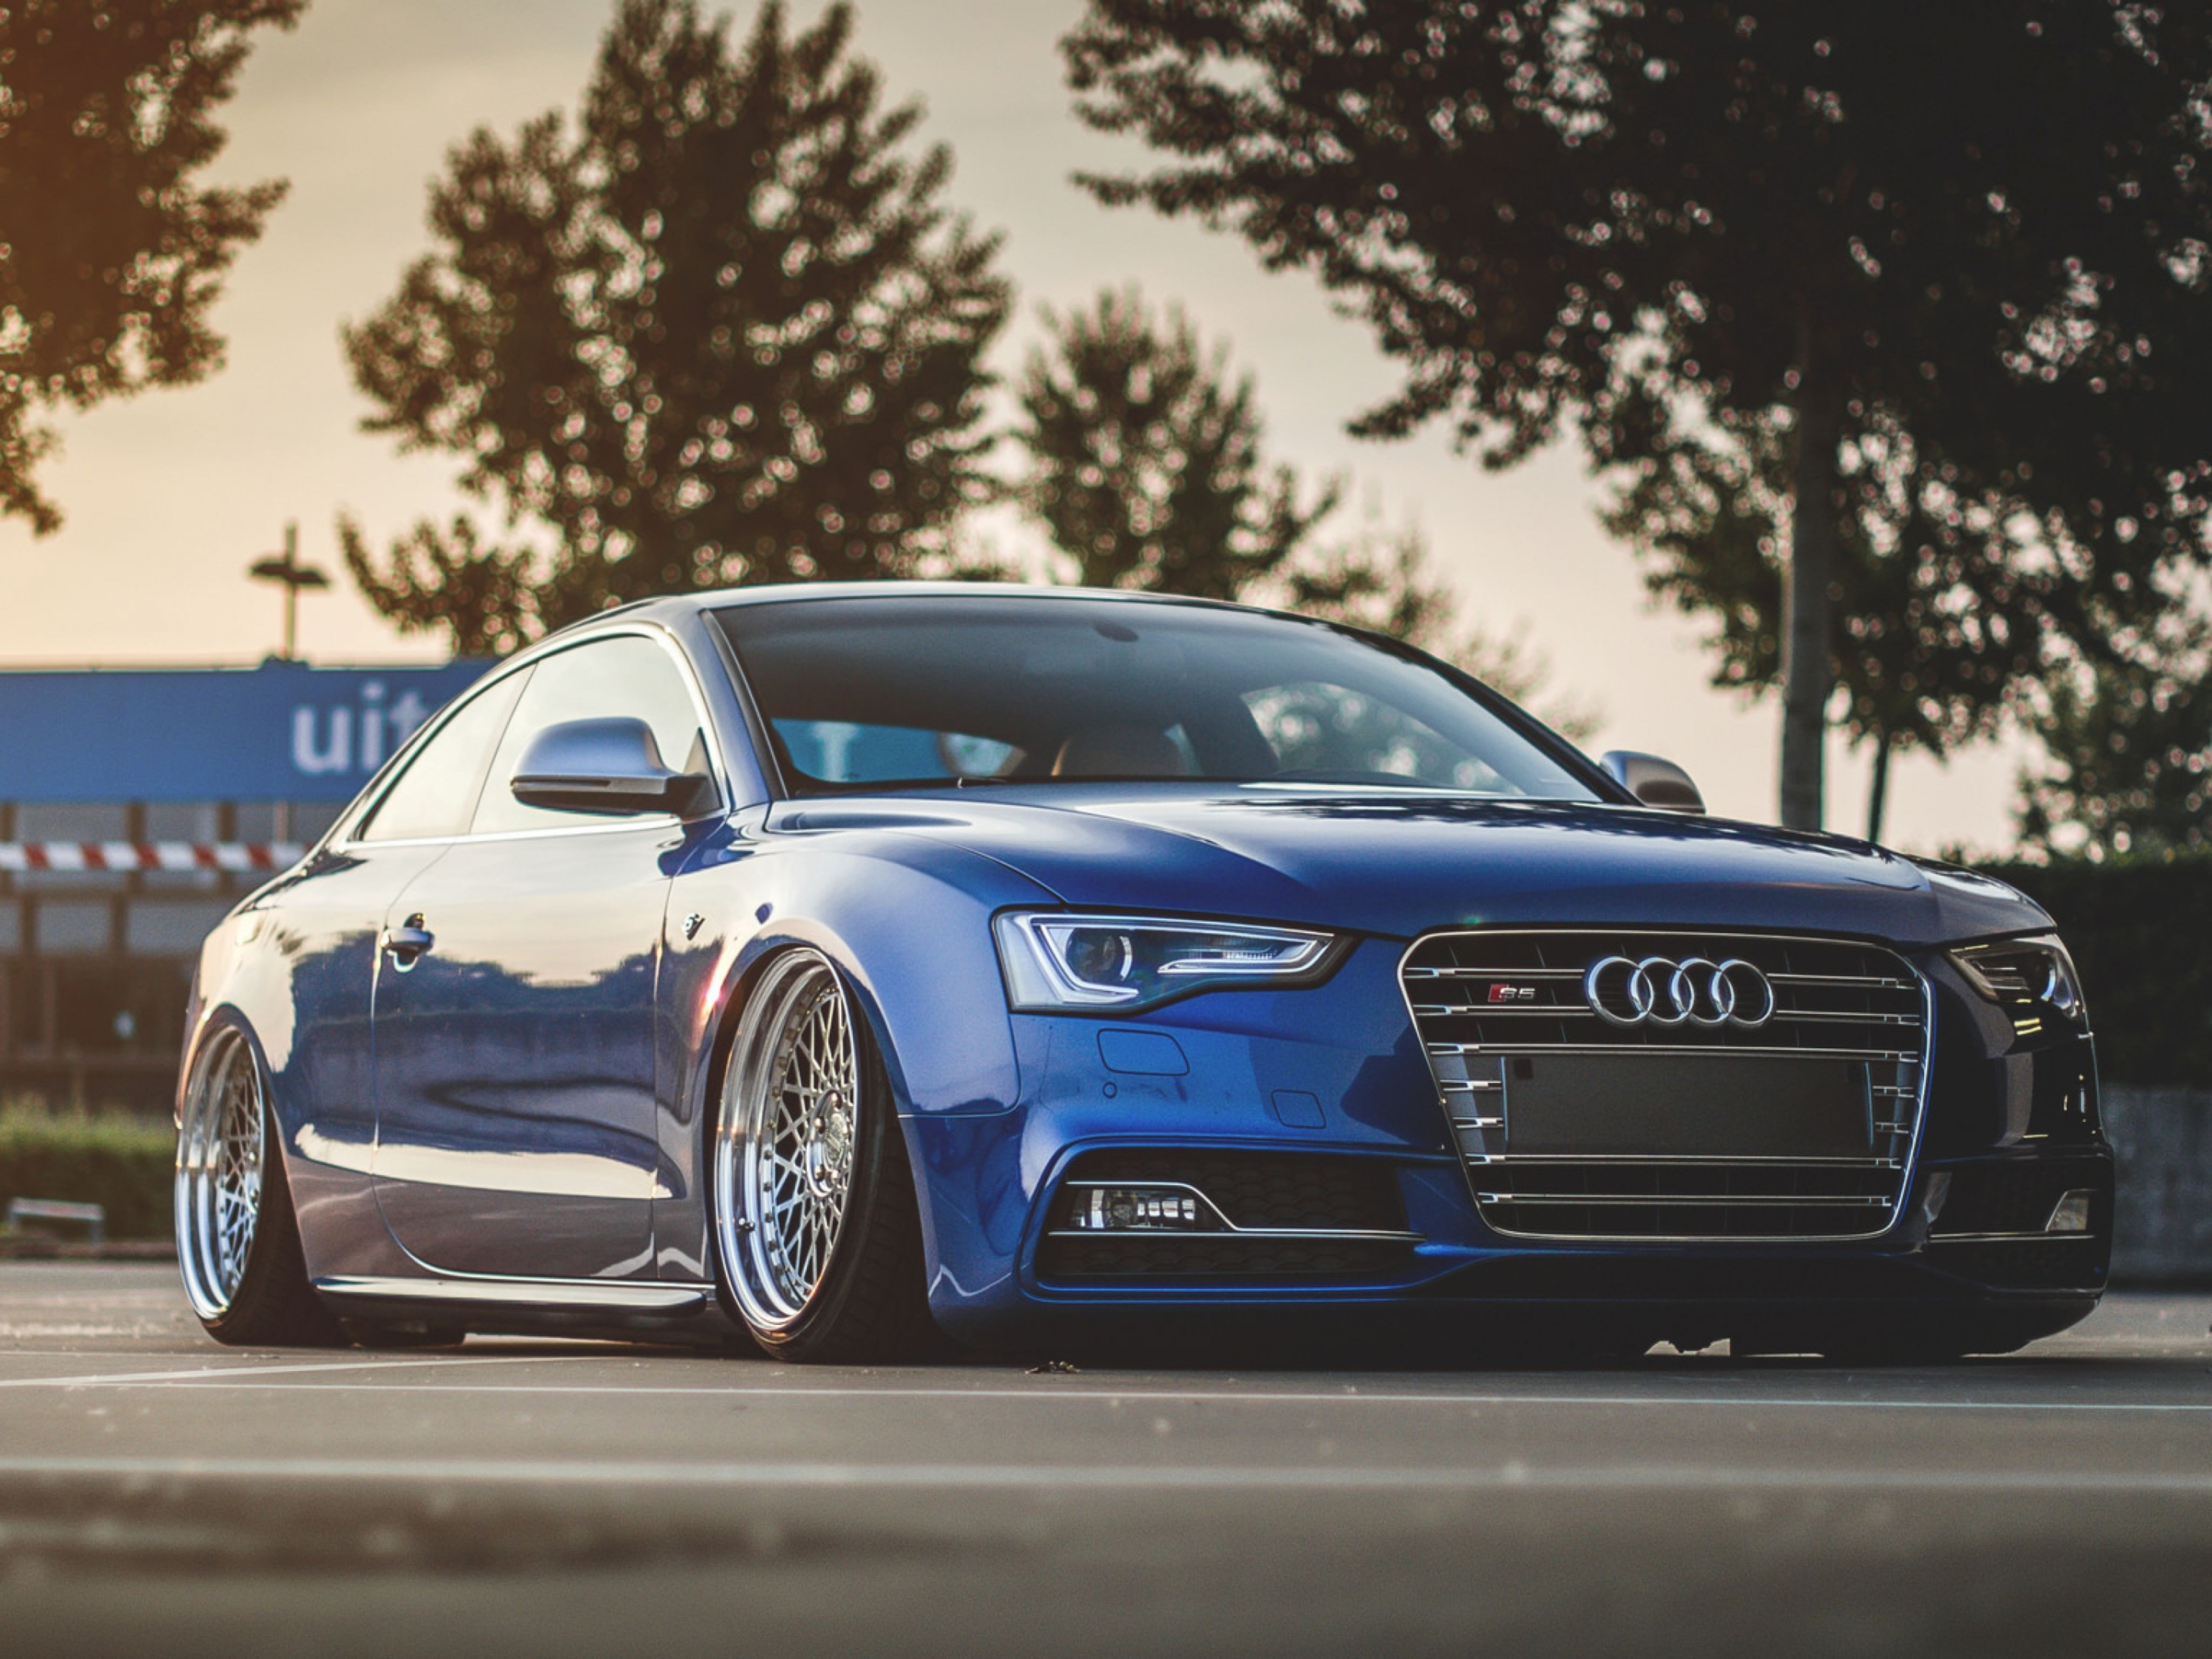 Blue Audi Wallpapers Top Free Blue Audi Backgrounds Wallpaperaccess